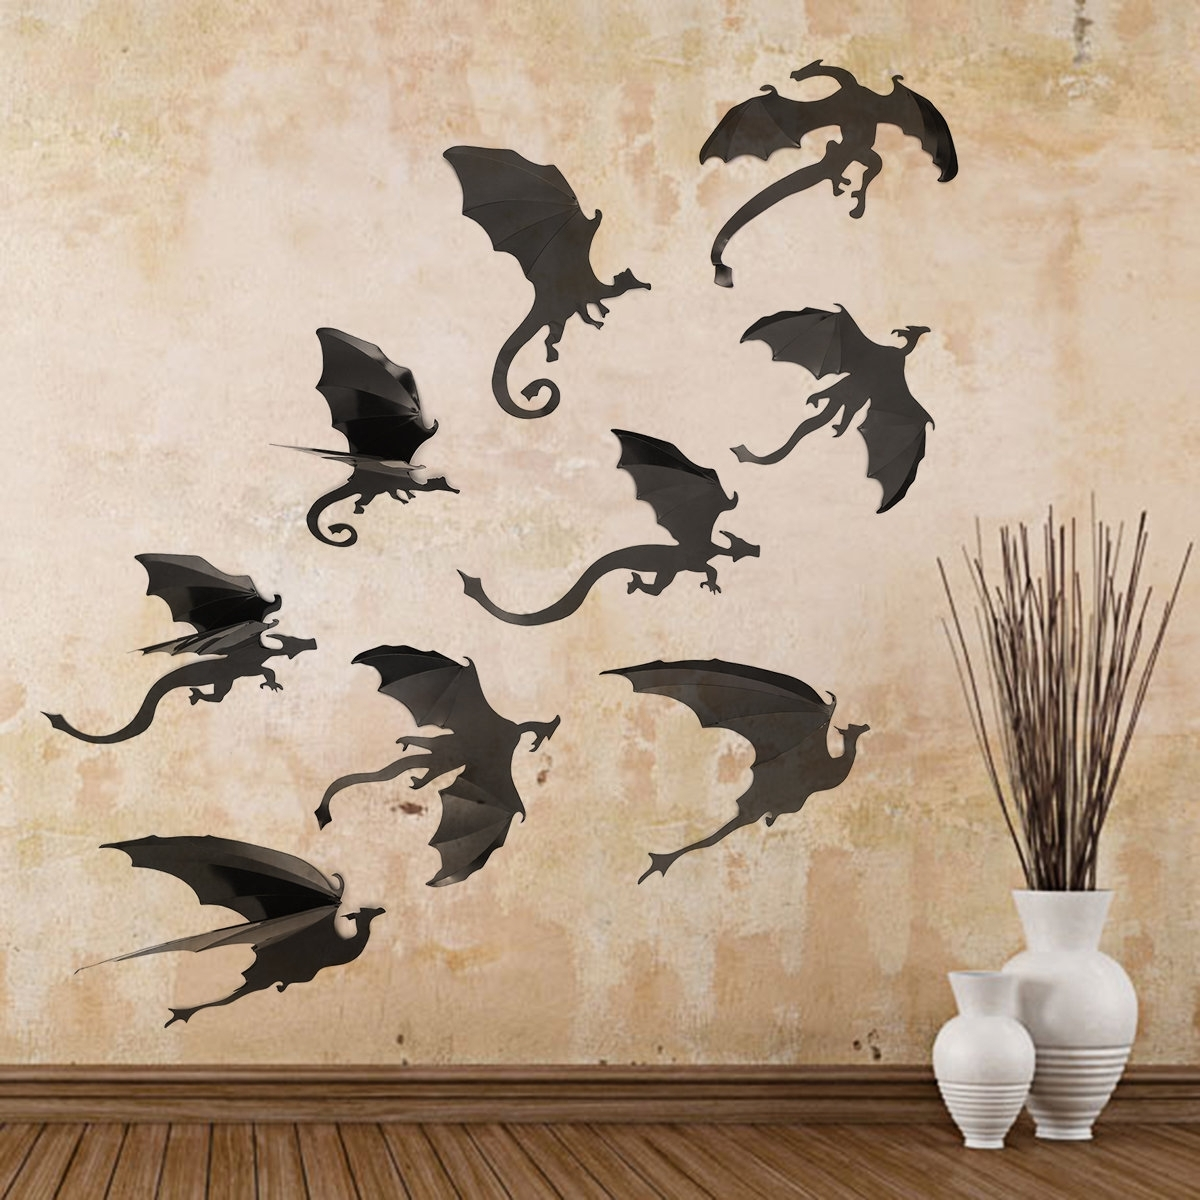 2017 Dragon Wall Art With Regard To Wall Decoration. Dragon Wall Art – Wall Decoration And Wall Art Ideas (Gallery 17 of 20)